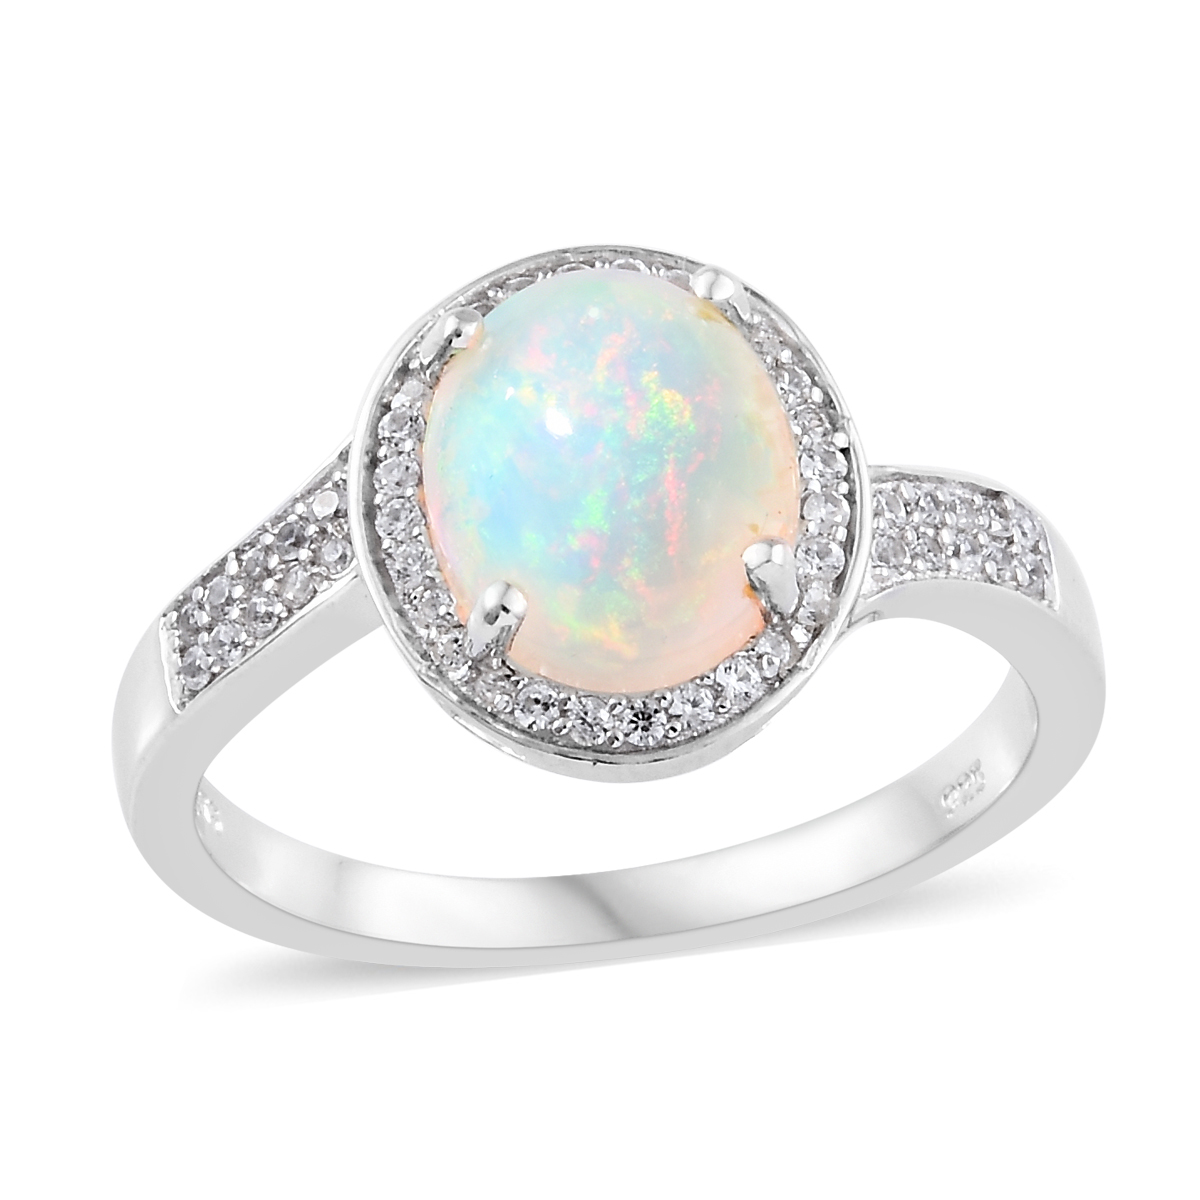 Ethiopian Welo Opal, Cambodian Zircon Ring in Platinum Over Sterling Silver (Size 9.0) 2.70 ctw